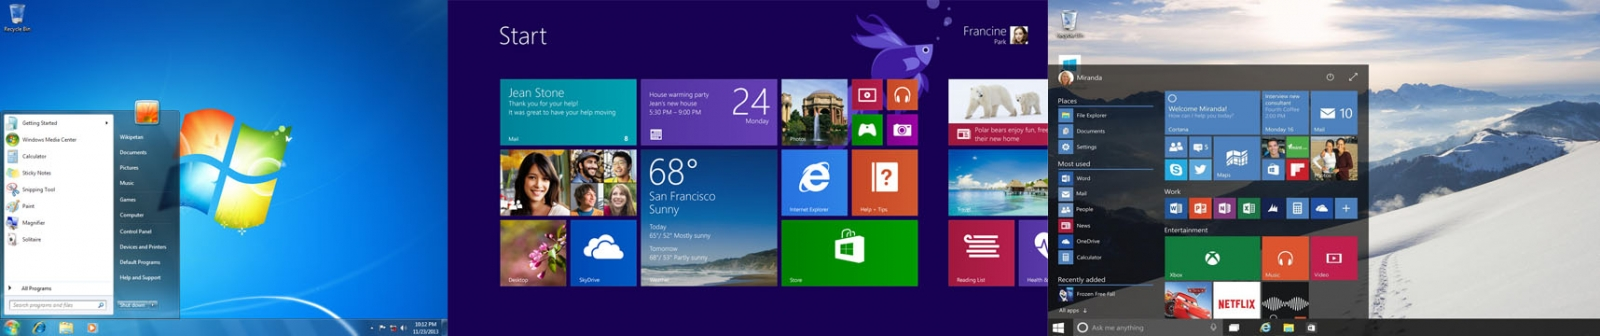 Windows 10, Windows 8.1 and Windows 7